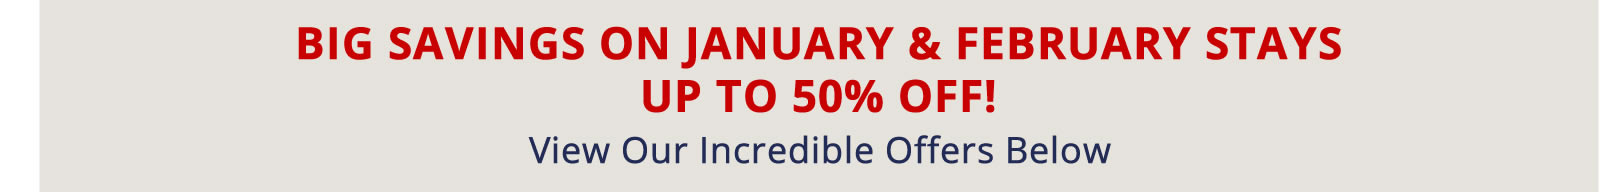 Book Now for Big Savings on January & February Stays. Up to 50% off!